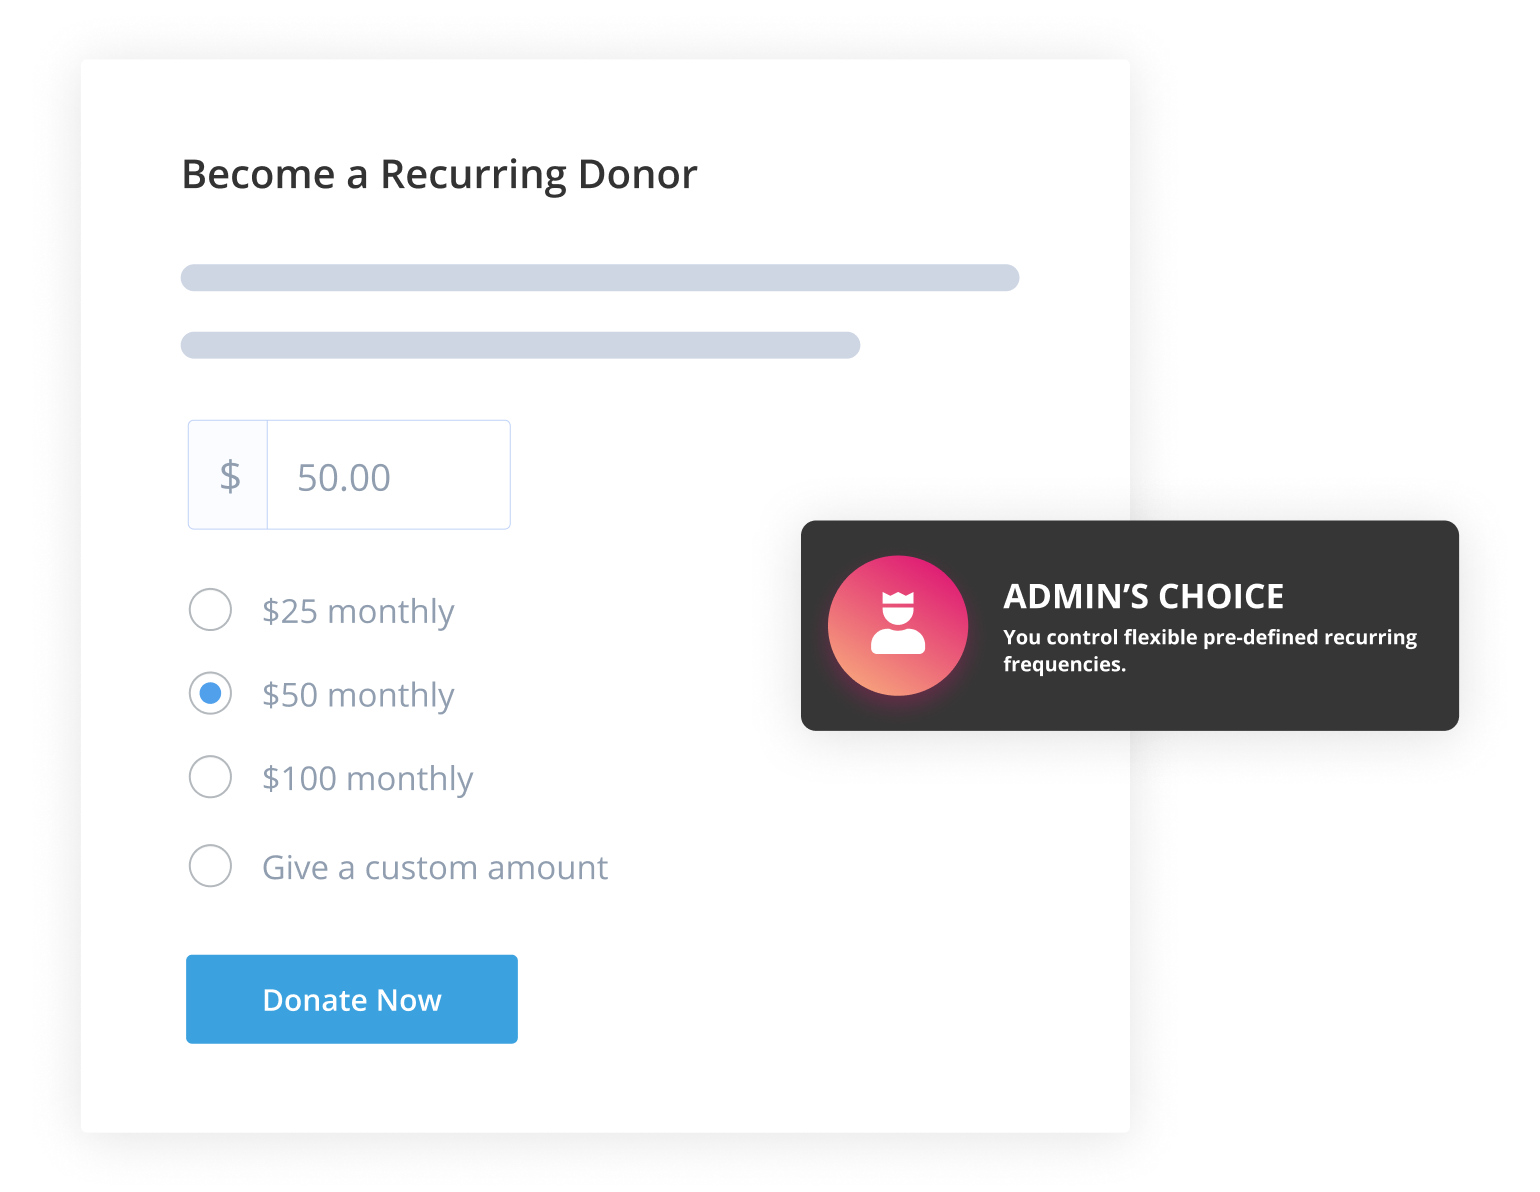 Admin's choice means you can control flexible pre-defined recurring donations frequencies to limit donors' options.